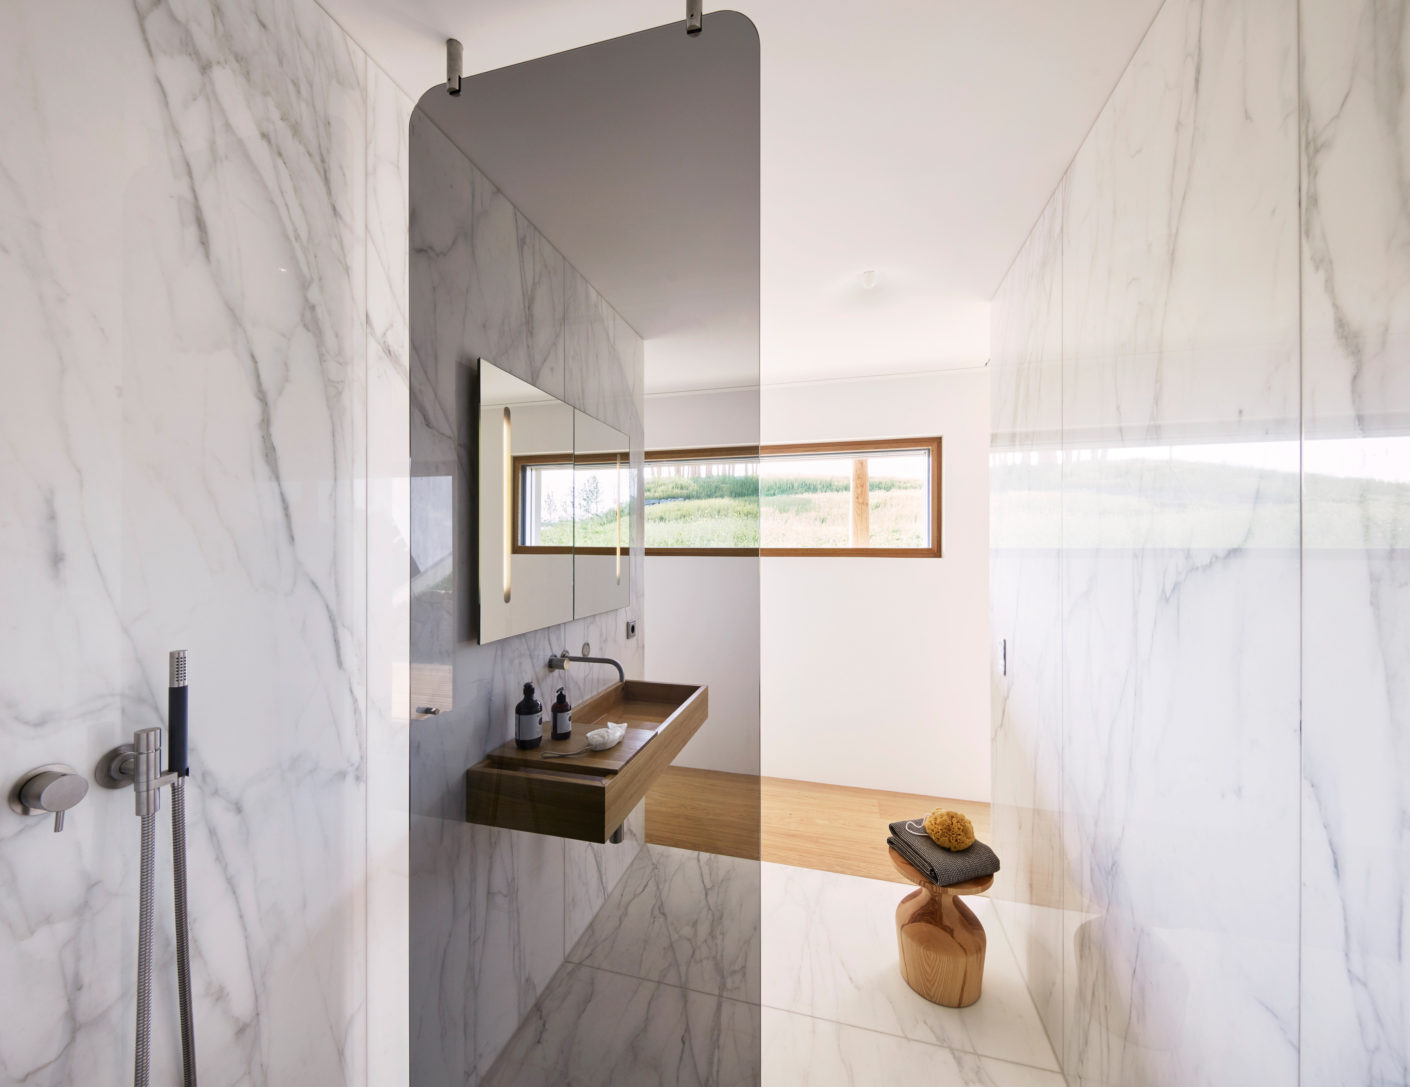 The respective purpose of the rooms is only evident from the change of flooring materials used – from parquet to marble.